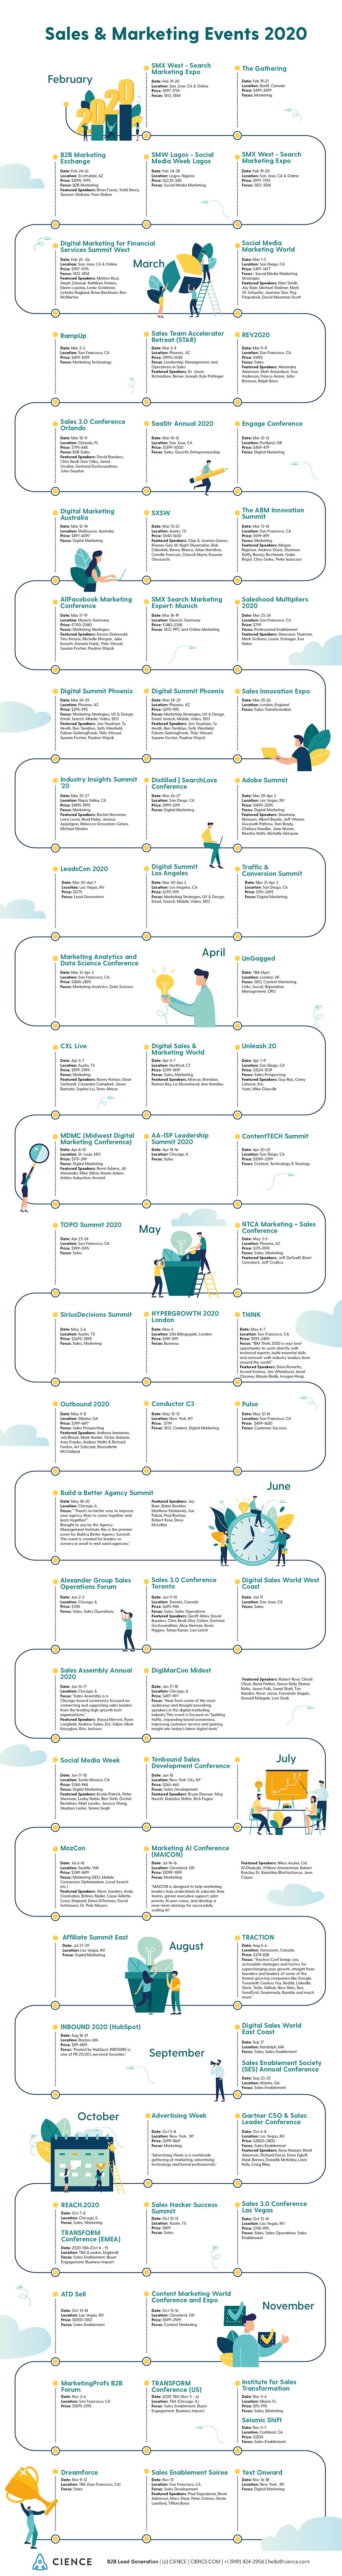 Sales and Marketing Events Calendar for 2020, Marketing Conferences 2020, Sales Conferences 2020